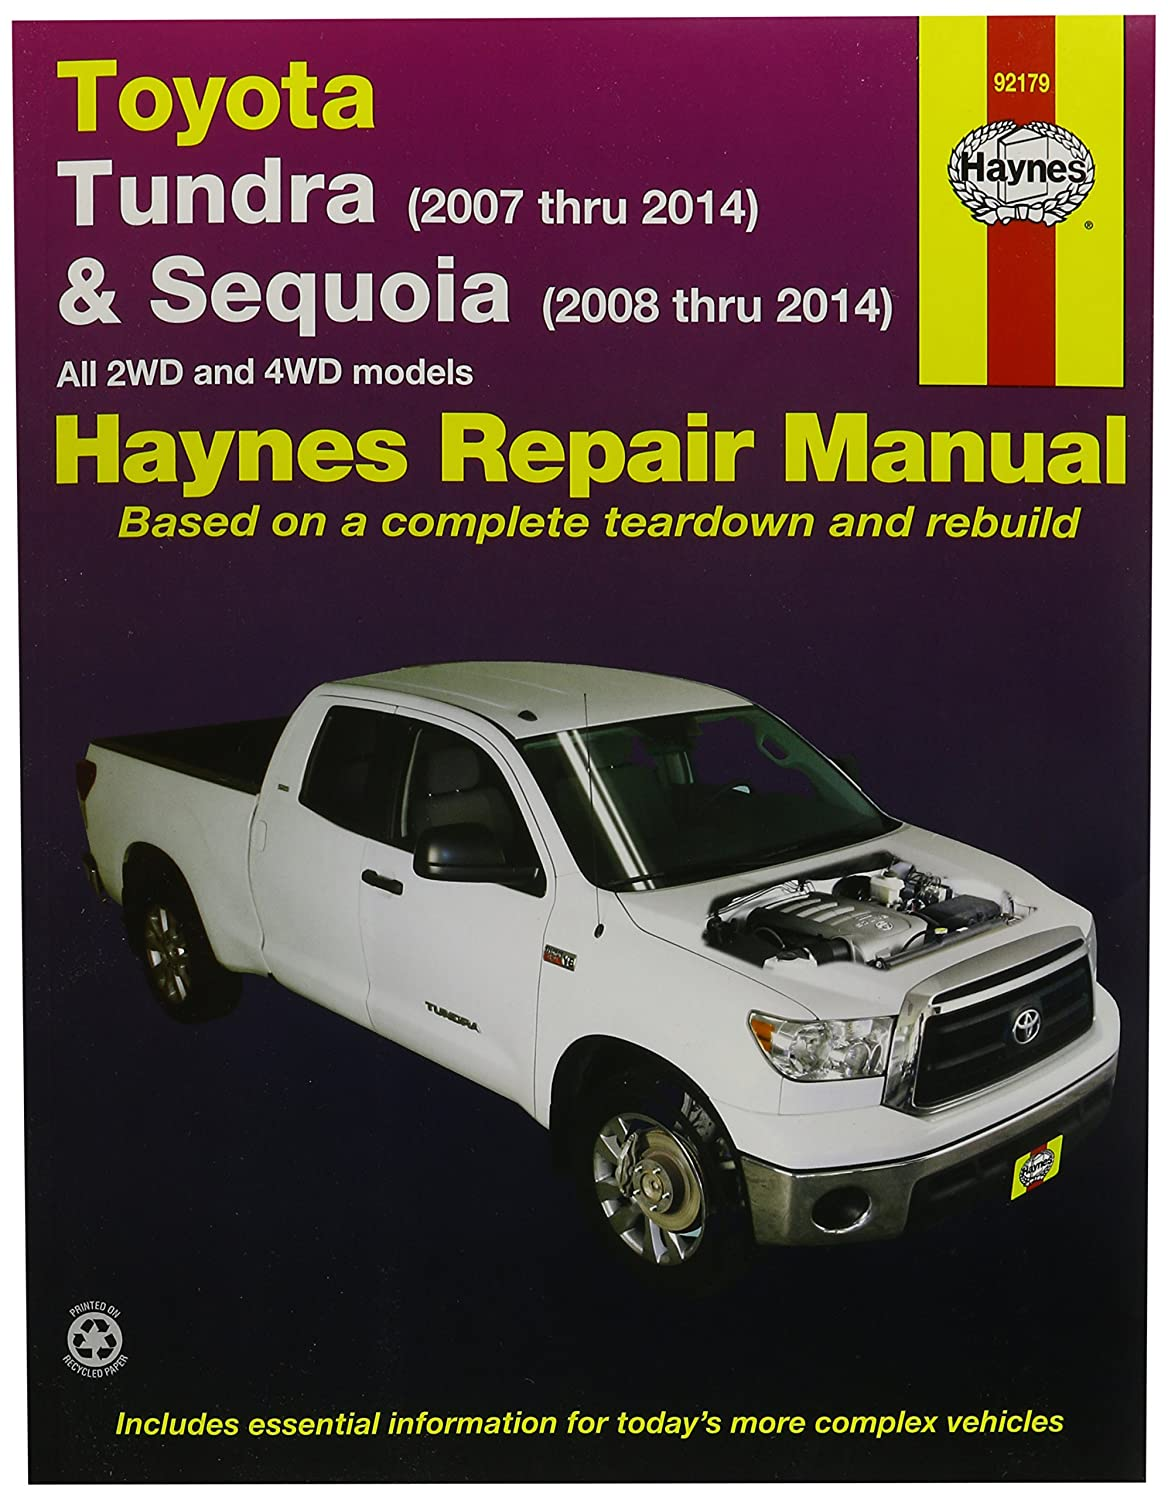 Haynes Repair Manuals Toyota Tundra 2007-2014 and Sequoia 2008-2014 (92179) FBA_92179